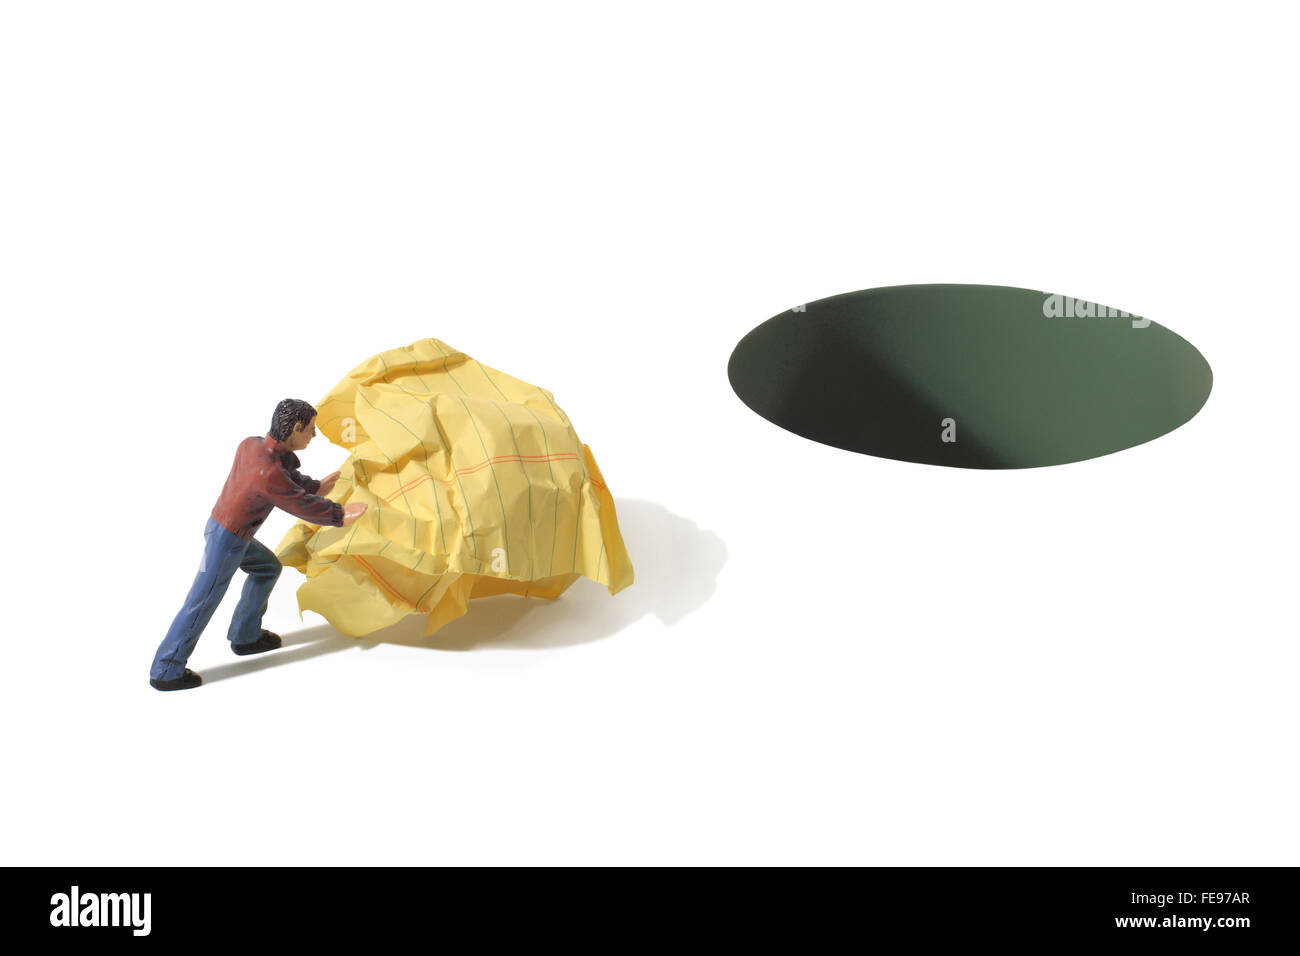 Figure Pushing Paper Wad Into a Hole on a White Background - Stock Image